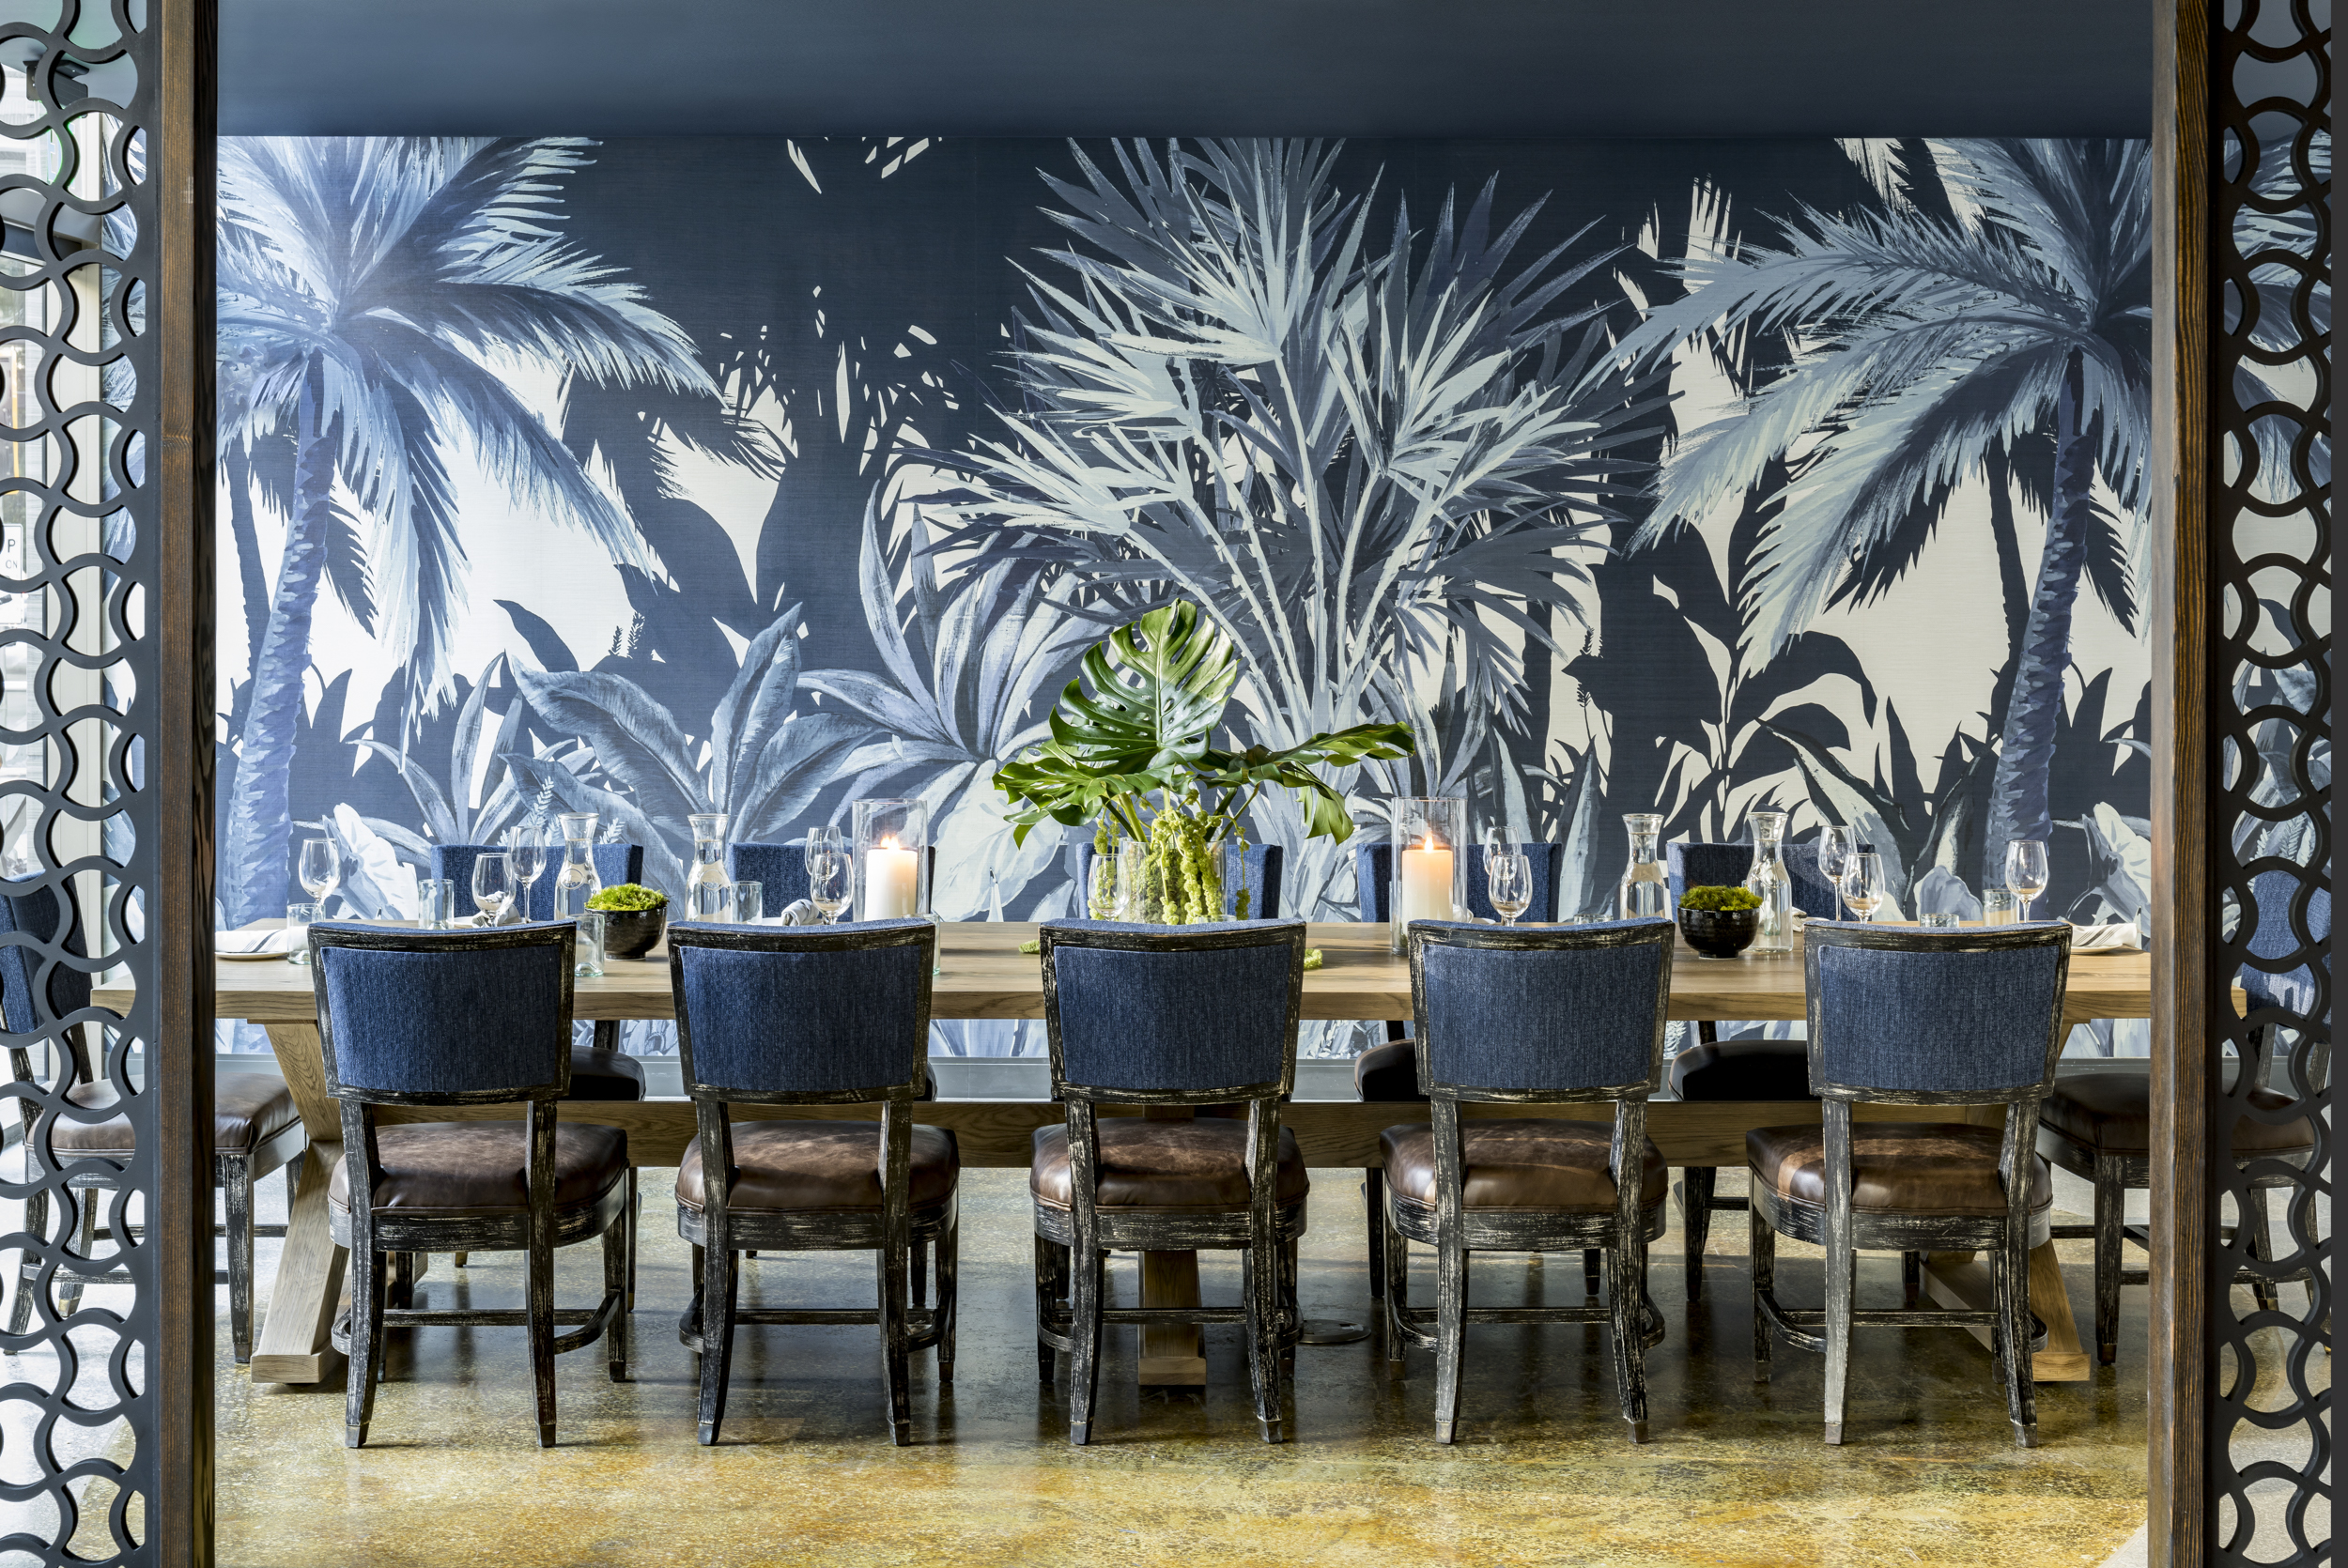 River Oyster Bar Private Dining Room with wallpaper and blue chairs